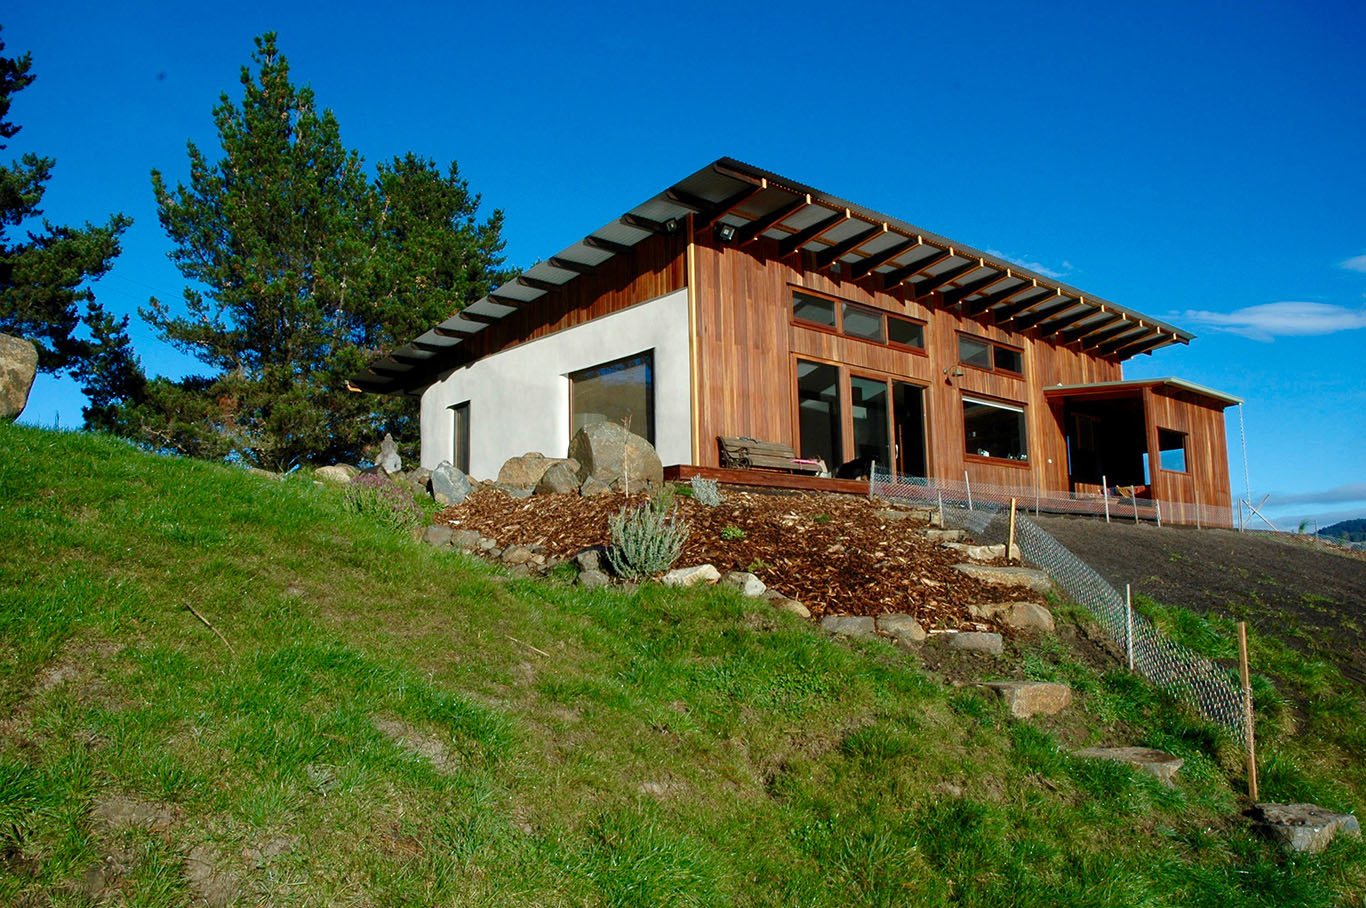 Integral Engineers Projects - Strawbale Home - Image 5.jpg